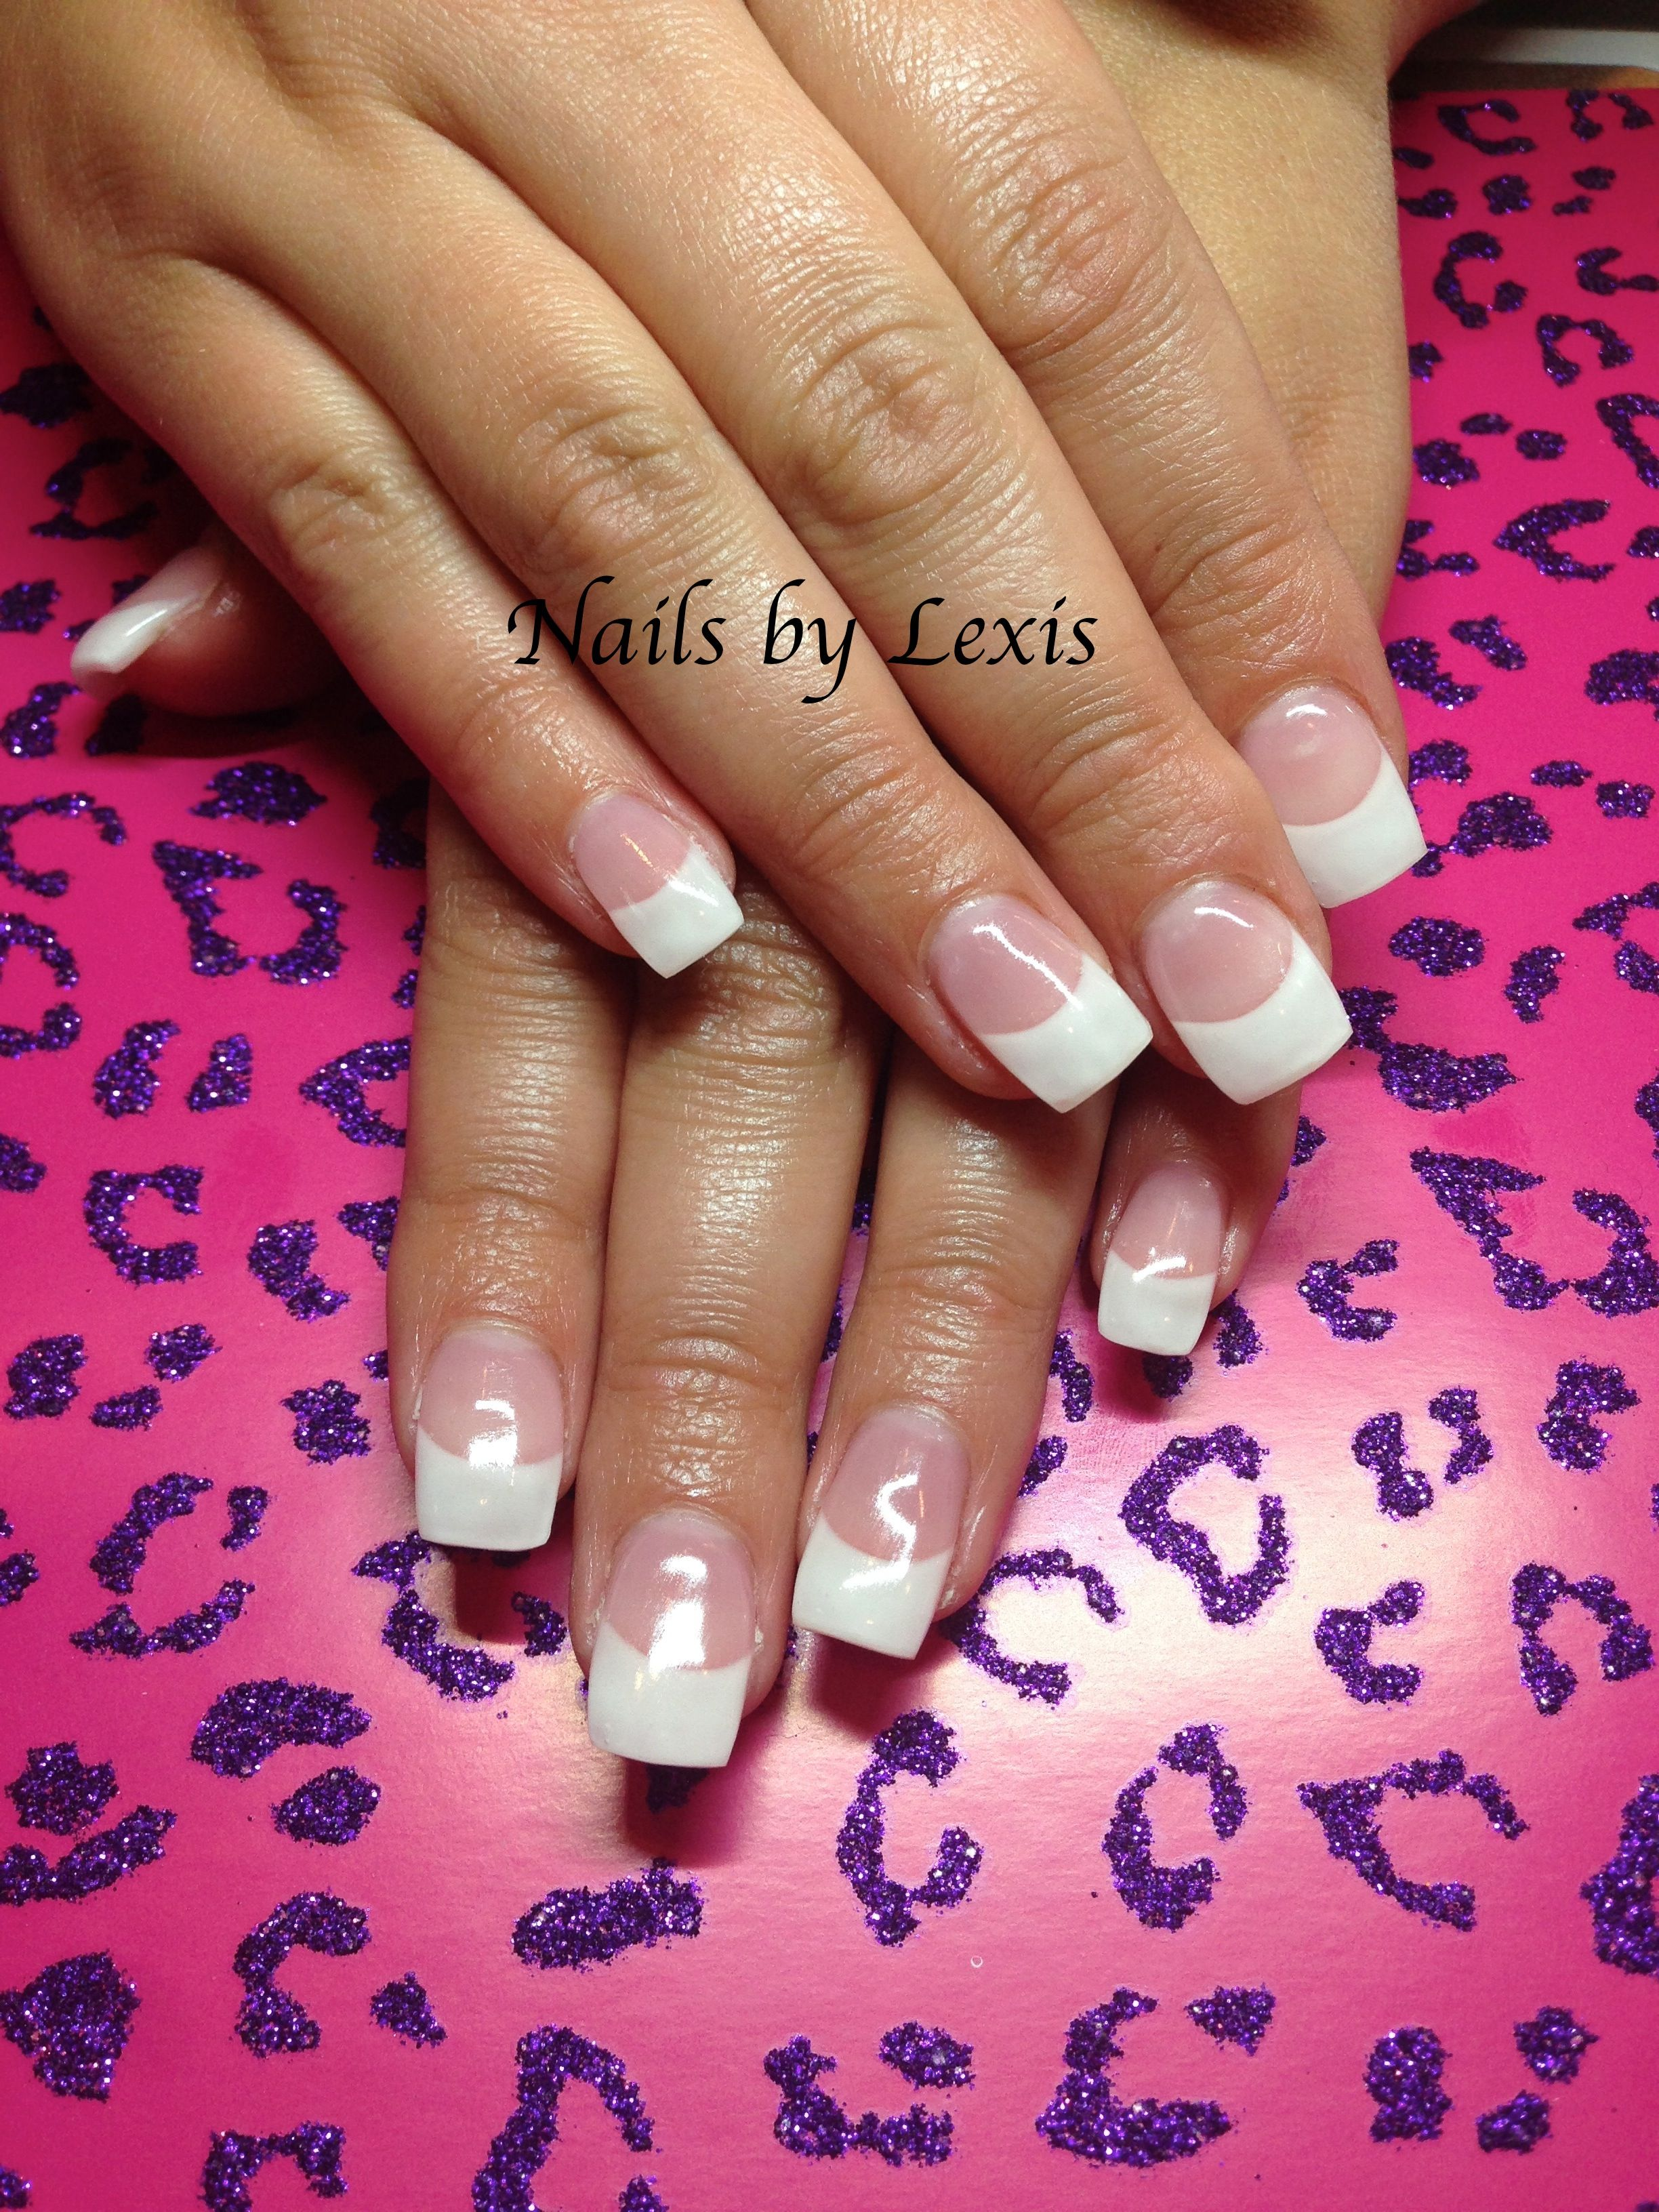 White French Fuzion Gel Nails By Lexis